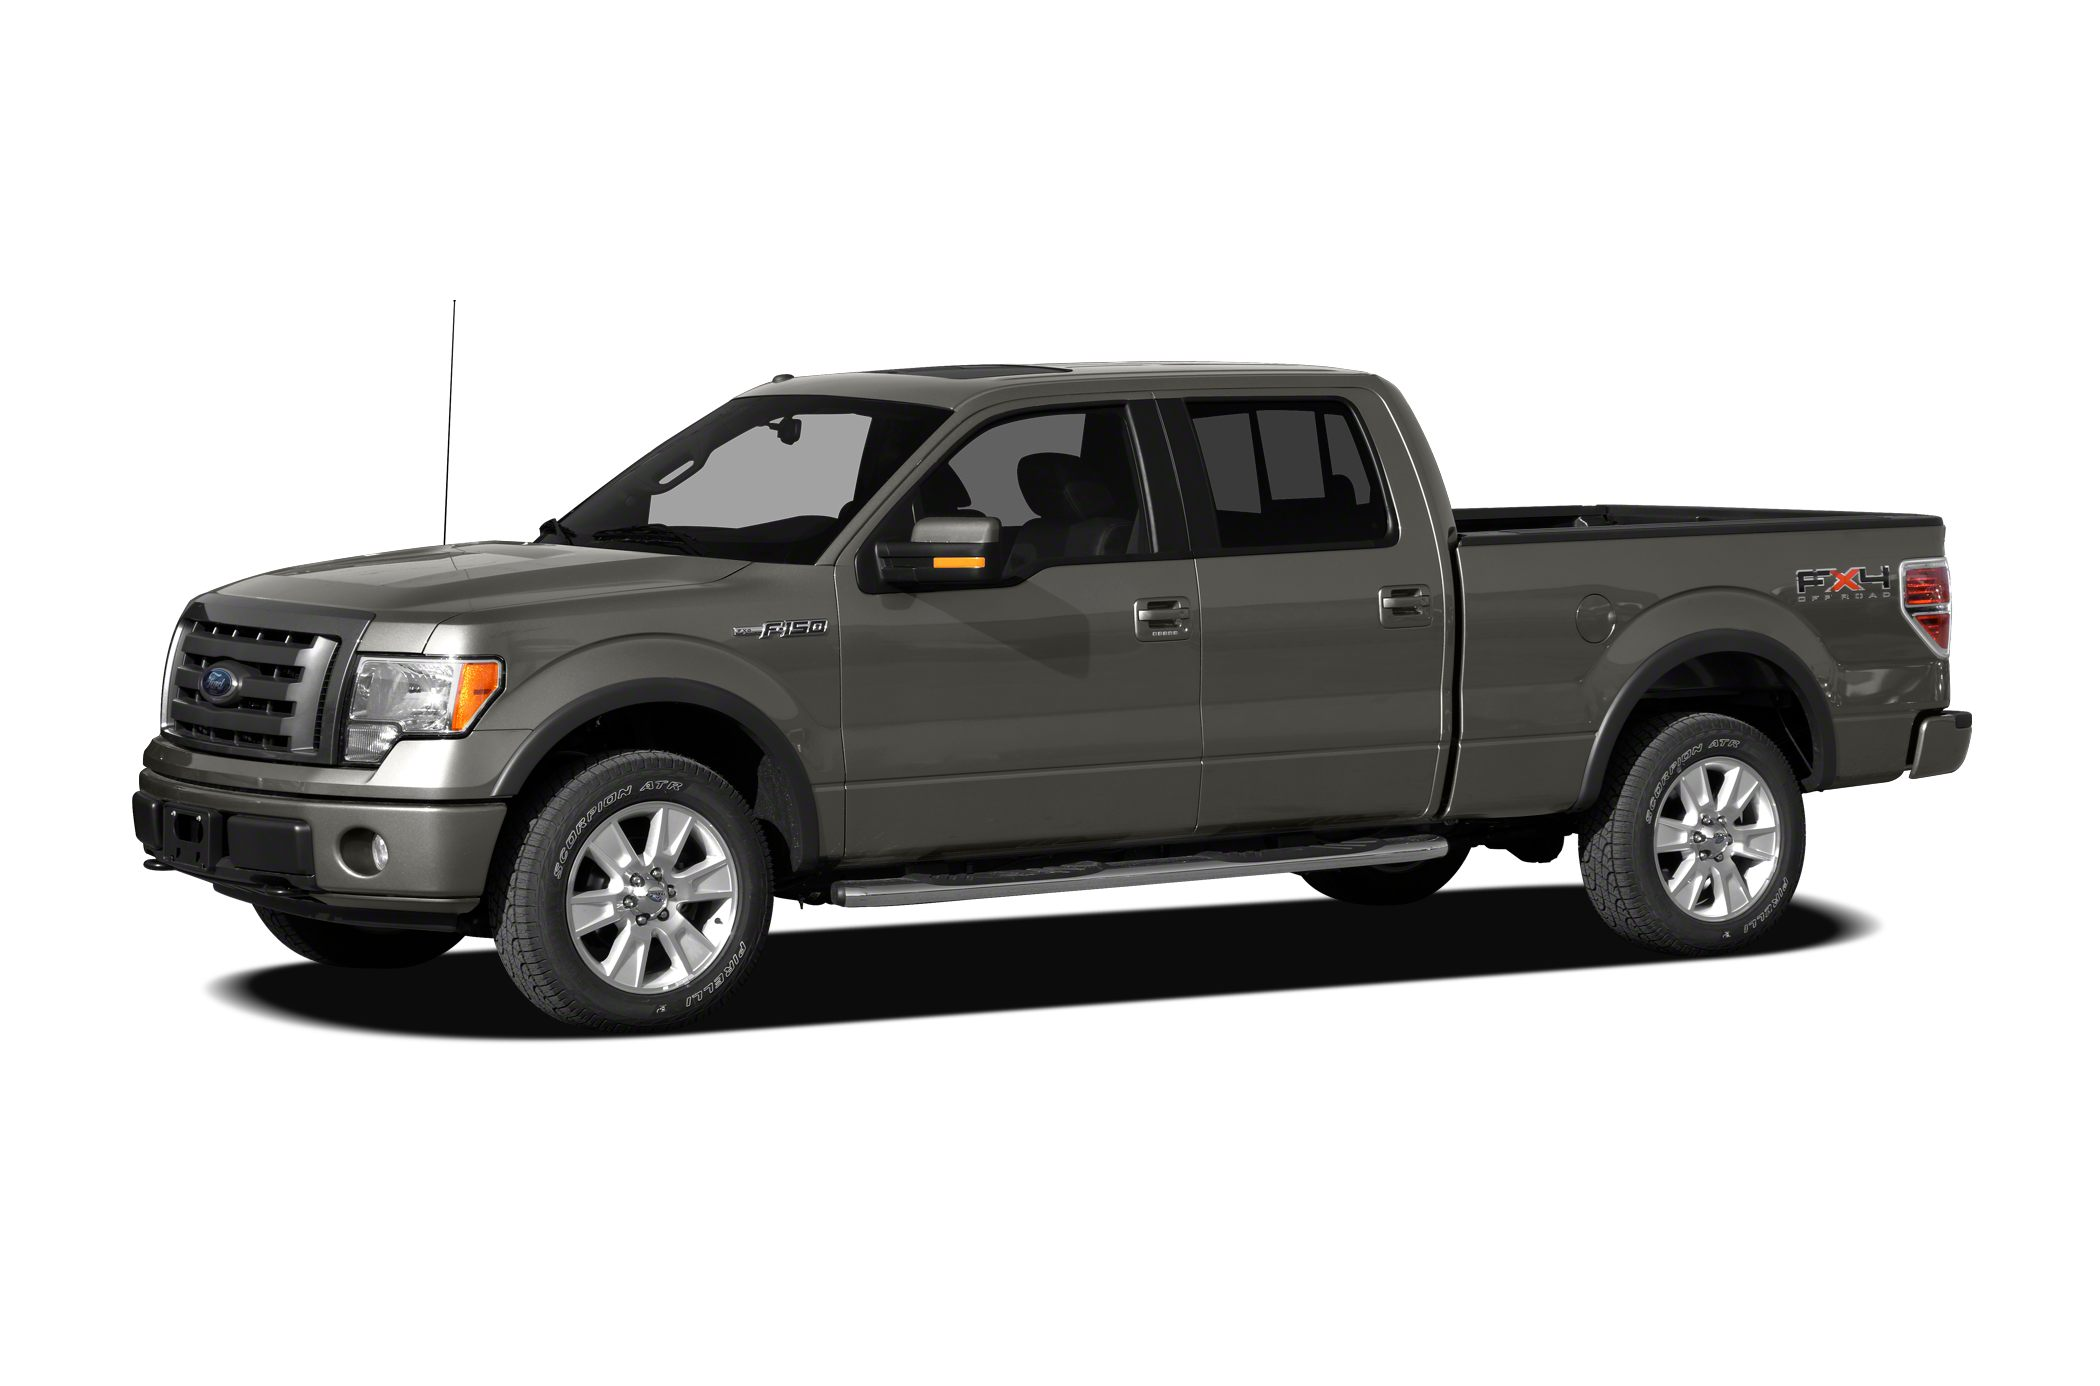 2011 Ford F150 Platinum Crew Cab Pickup for sale in North Charleston for $24,855 with 117,892 miles.